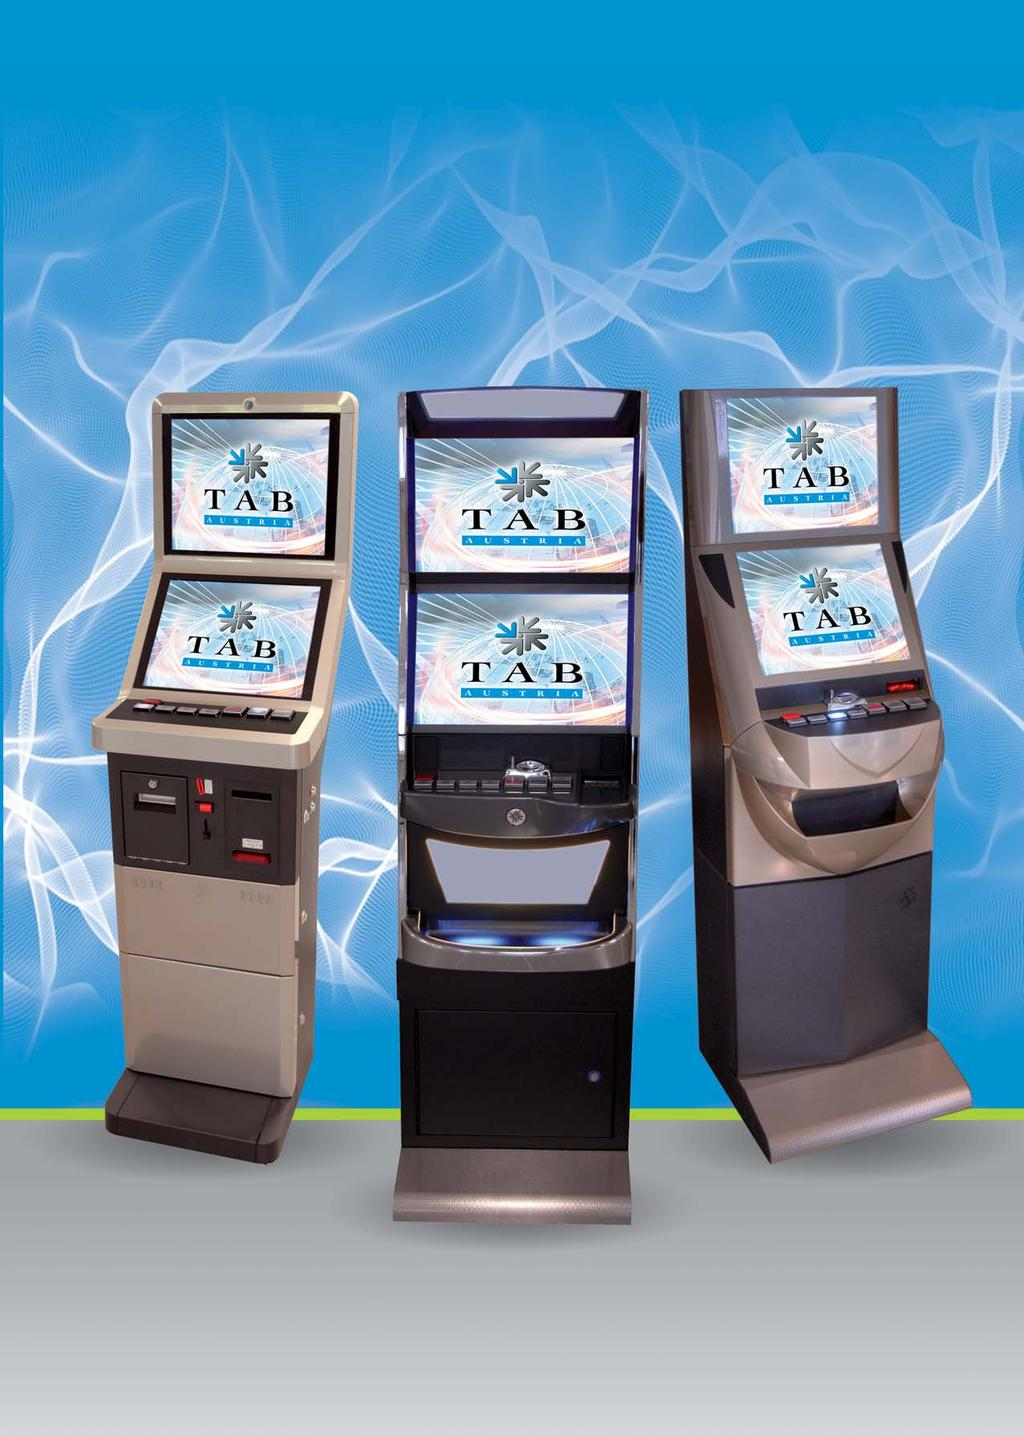 Go4gold betting terminals total cryptocurrency market cap